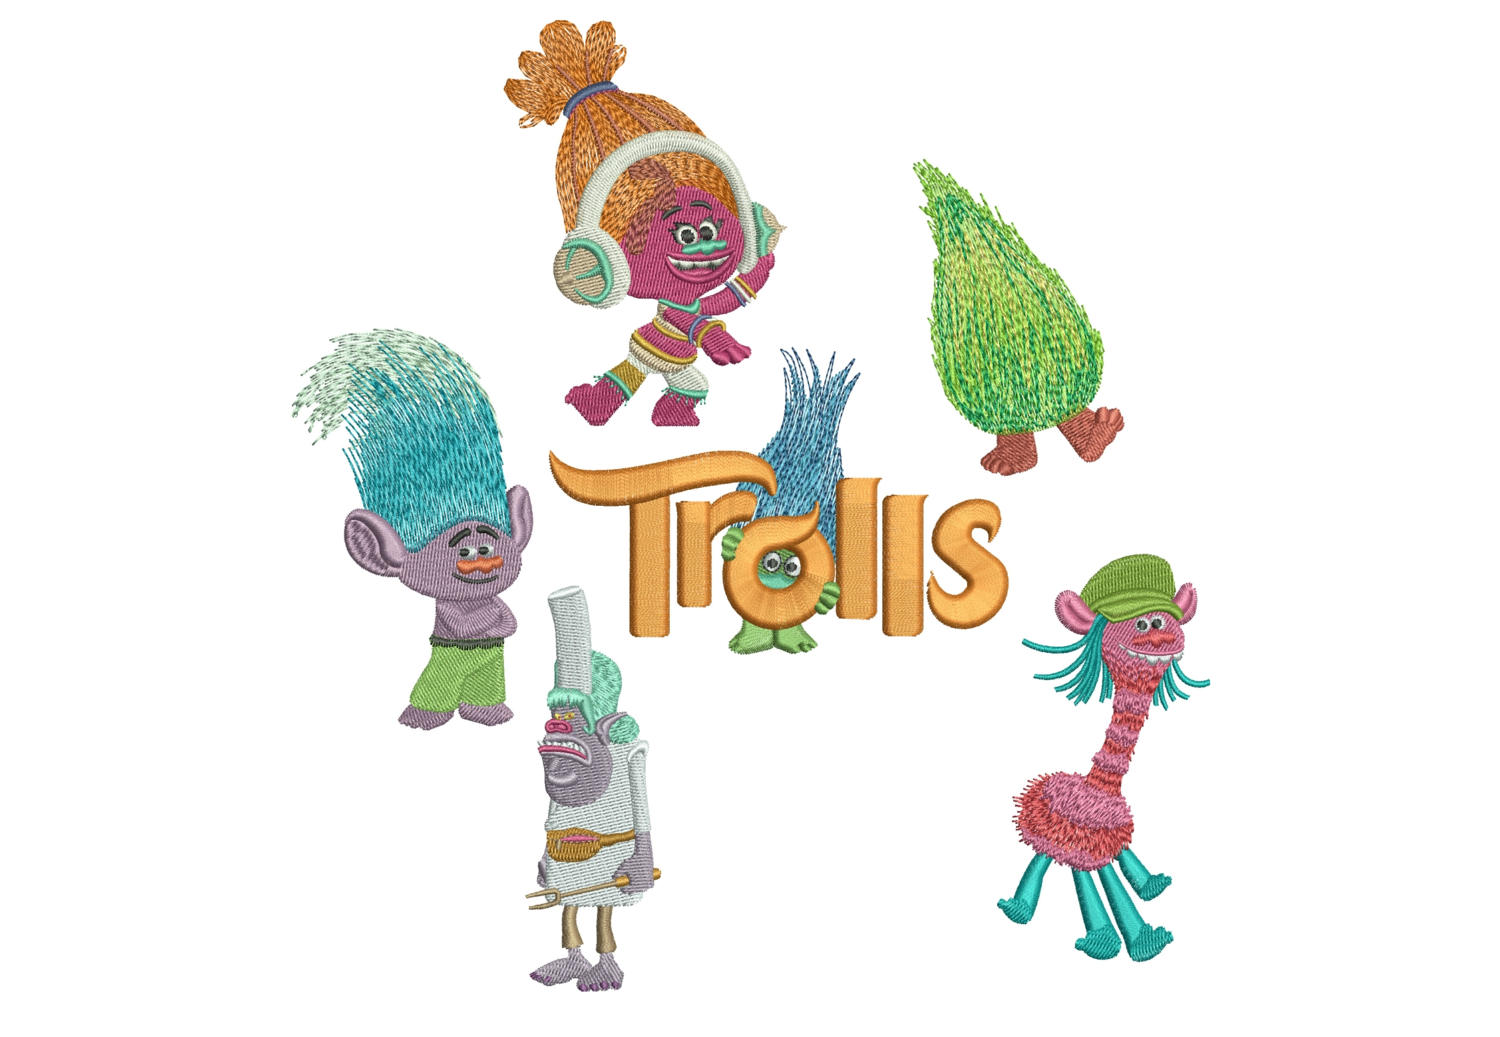 50% off - Trolls machine embroidery designs - 4in hoop - Set No.2 - Trolls Movie Logo, Cooper, Chef, Creek, DJ, Fuzzbert - resizeable files.